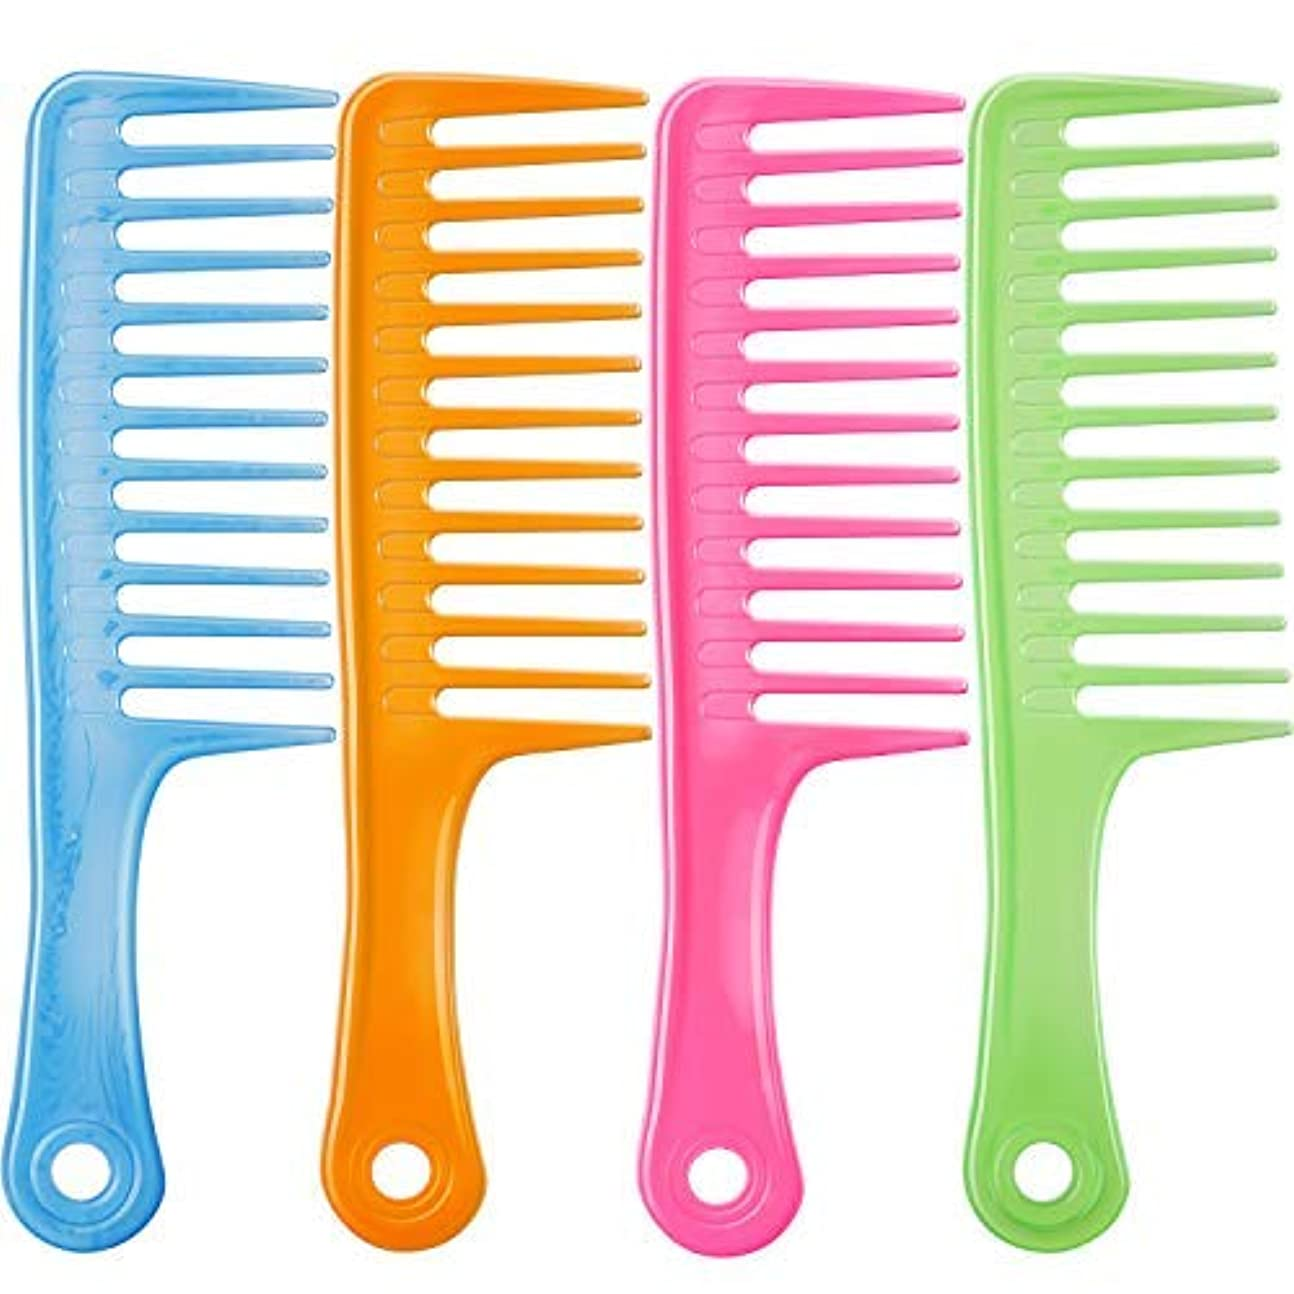 TecUnite 4 Pieces 9 1/2 Inches Anti-static Large Tooth Detangle Comb, Wide Tooth Hair Comb Salon Shampoo Comb...